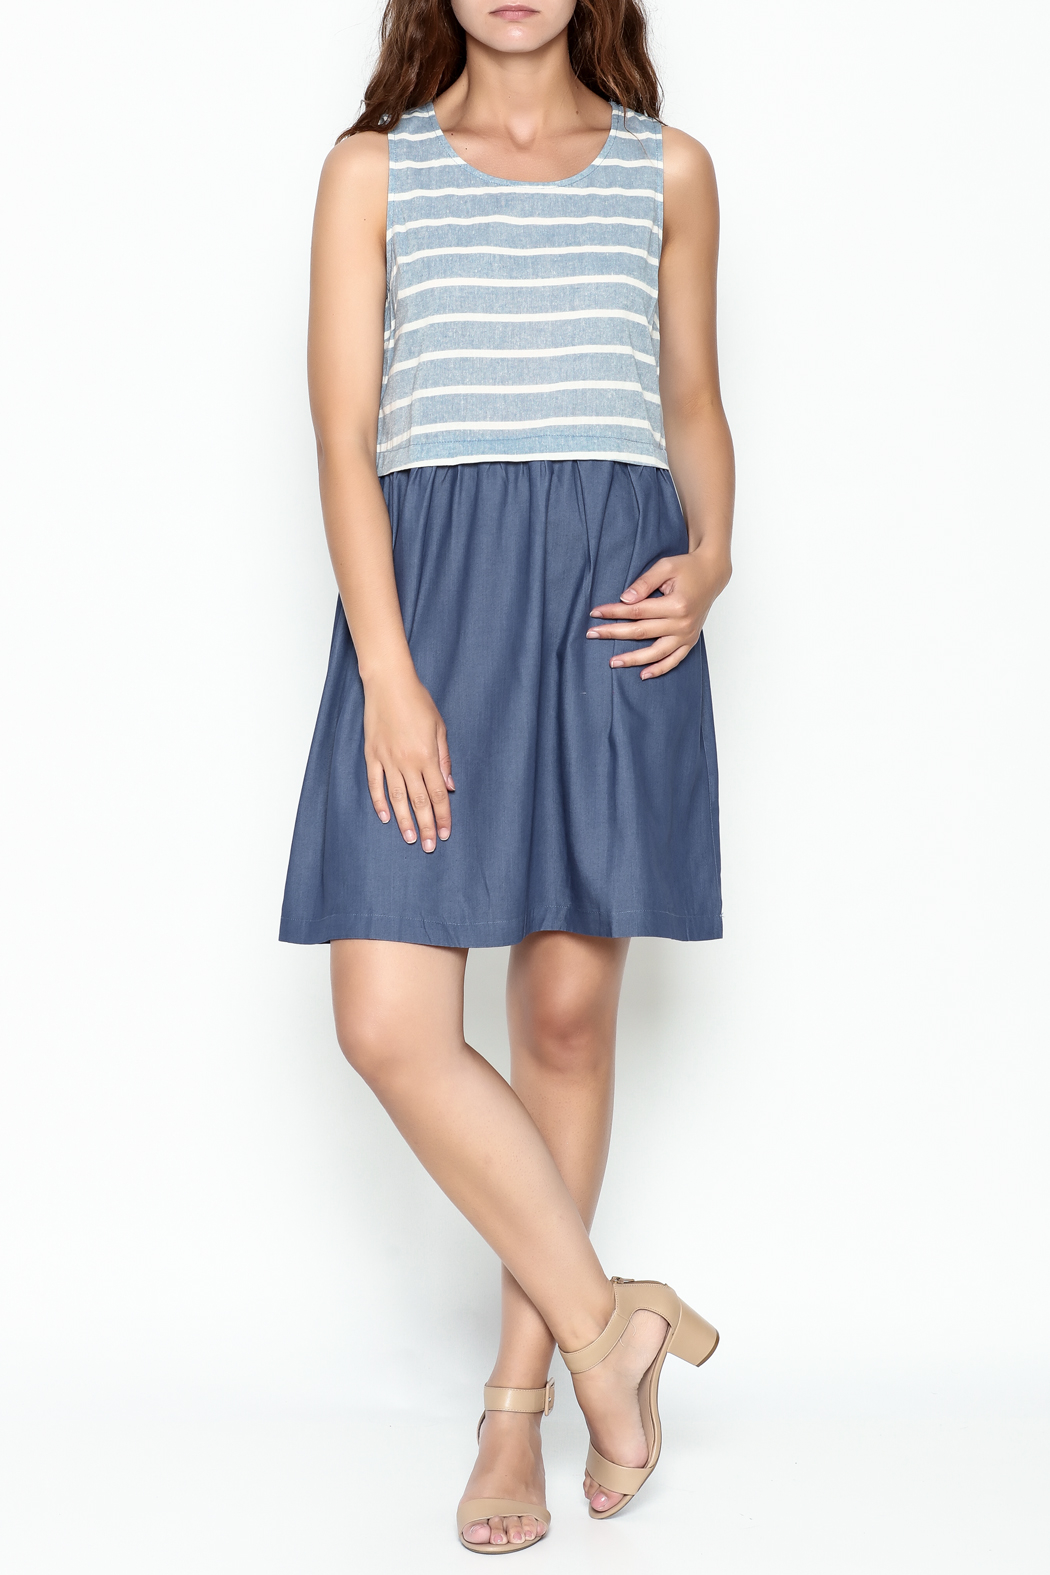 Skies Are Blue Blue And White Dress - Side Cropped Image